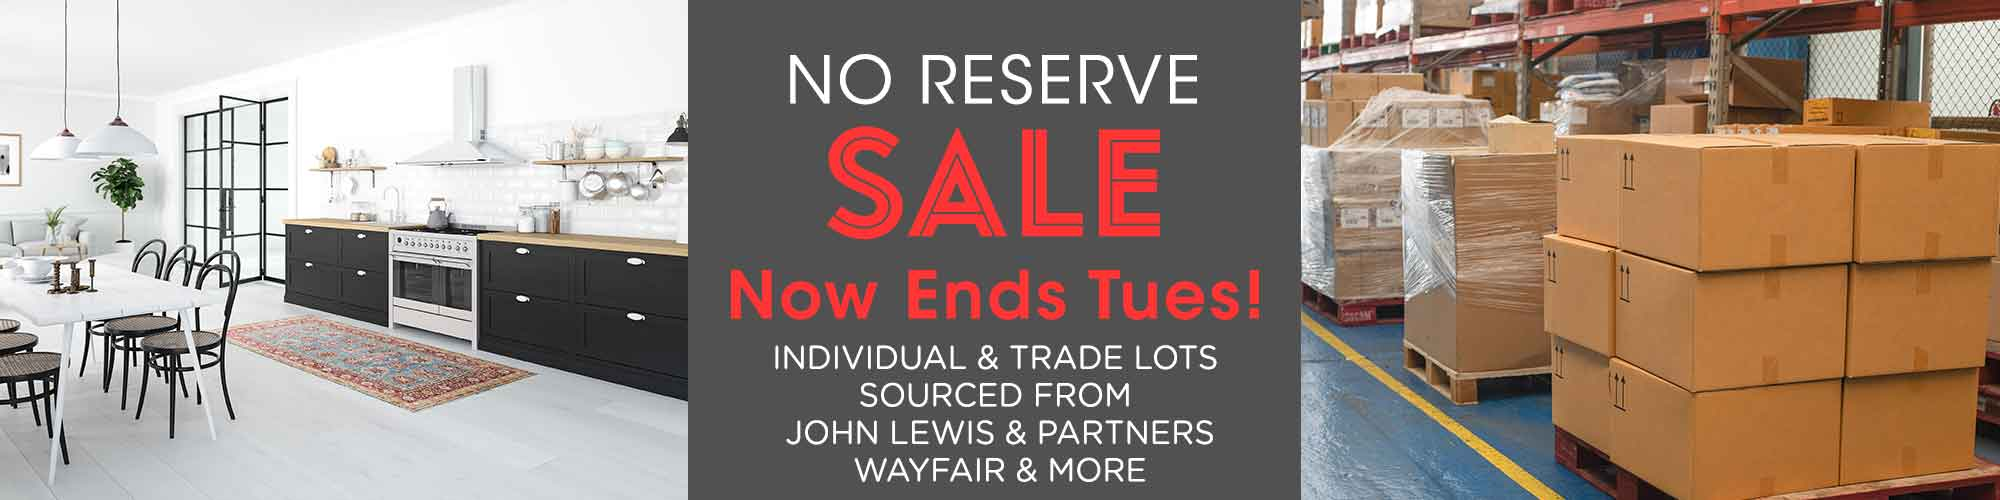 Midweek No Reserve Timed Auction